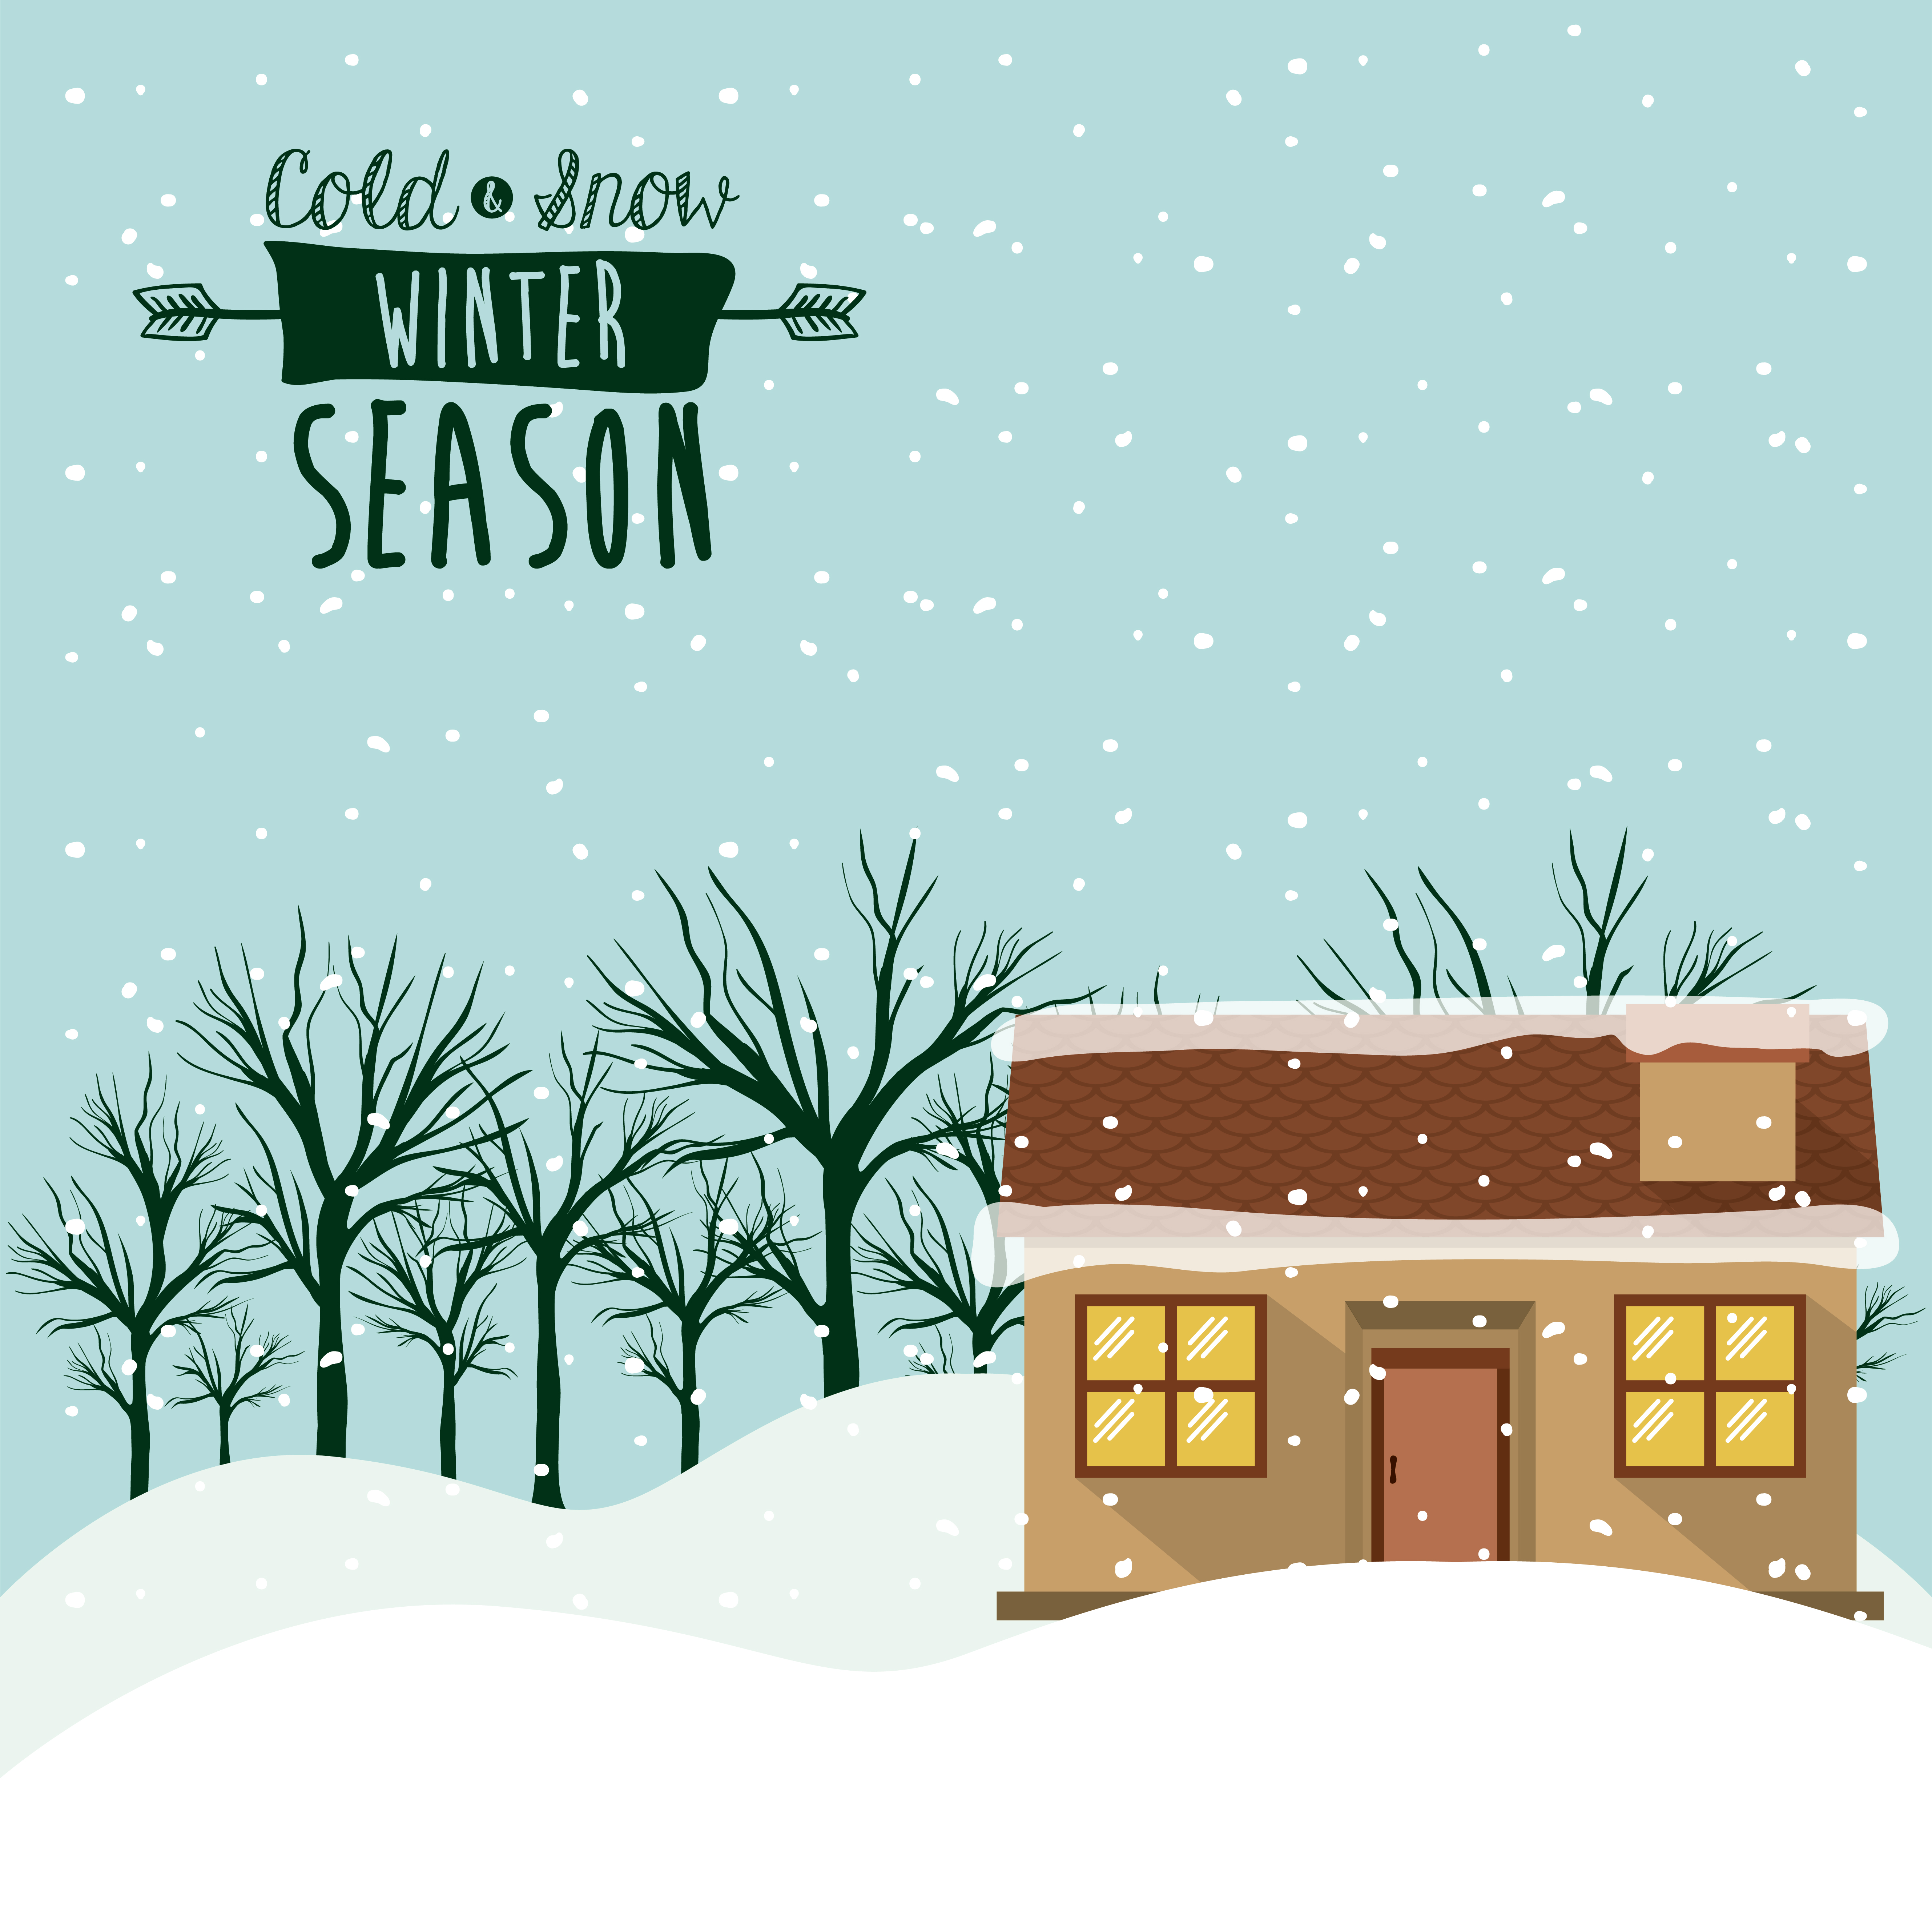 Selling your home in winter tips for maximizing your for Cost to build a house in northern virginia